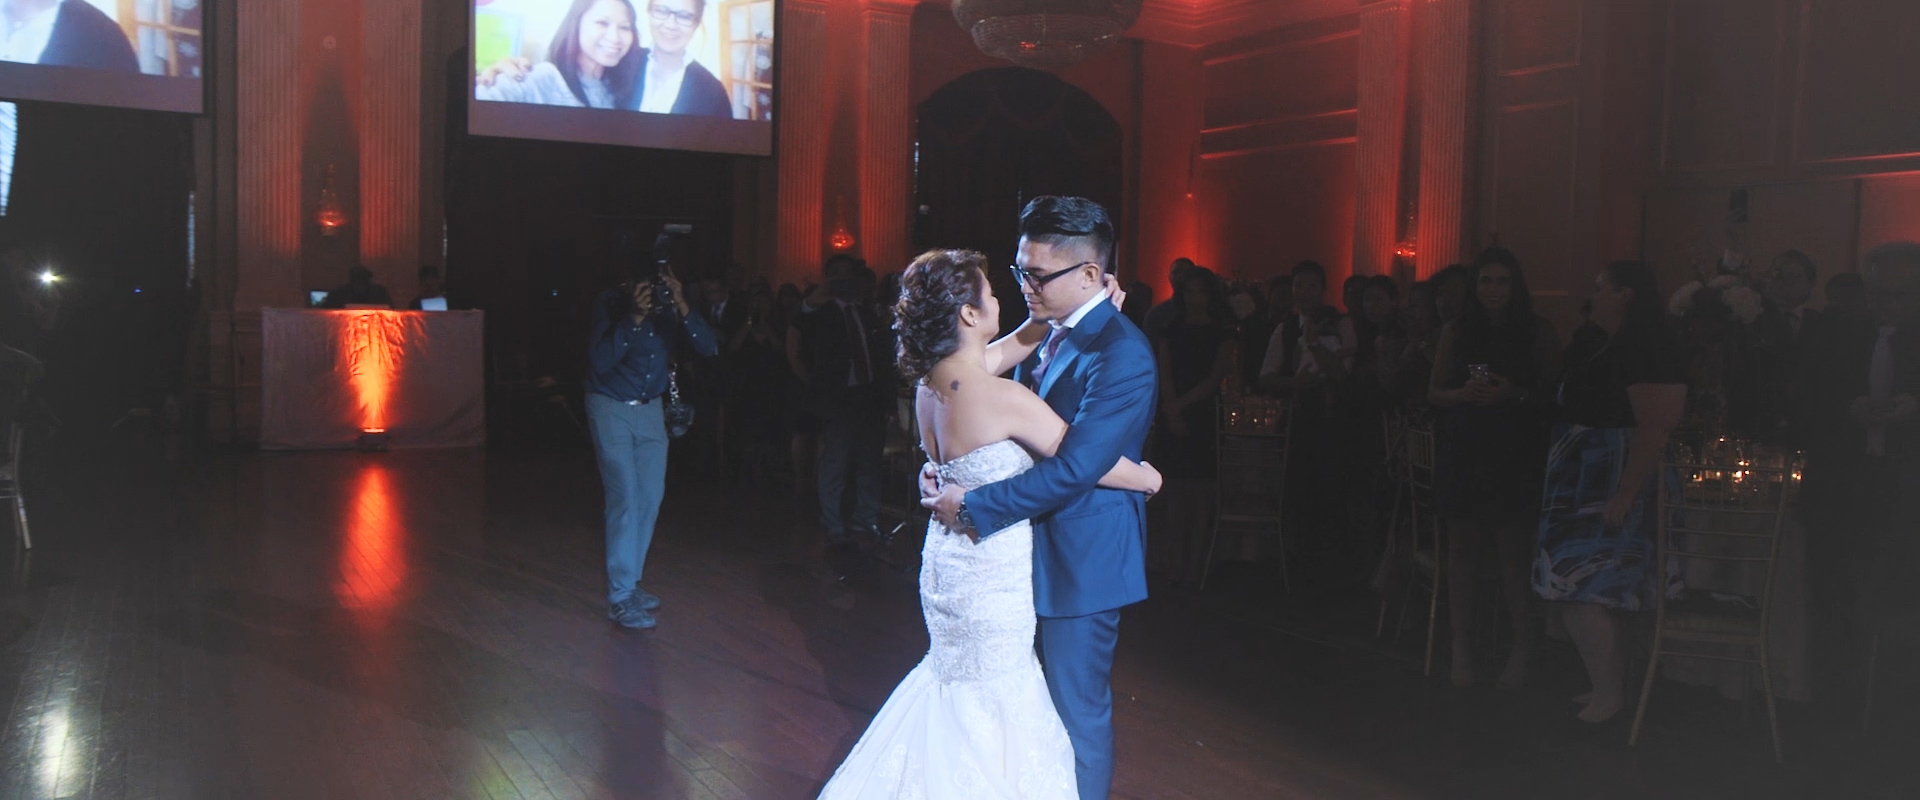 An image of a couple during their first dance at their wedding reception; taken from one of our Toronto Wedding Videos